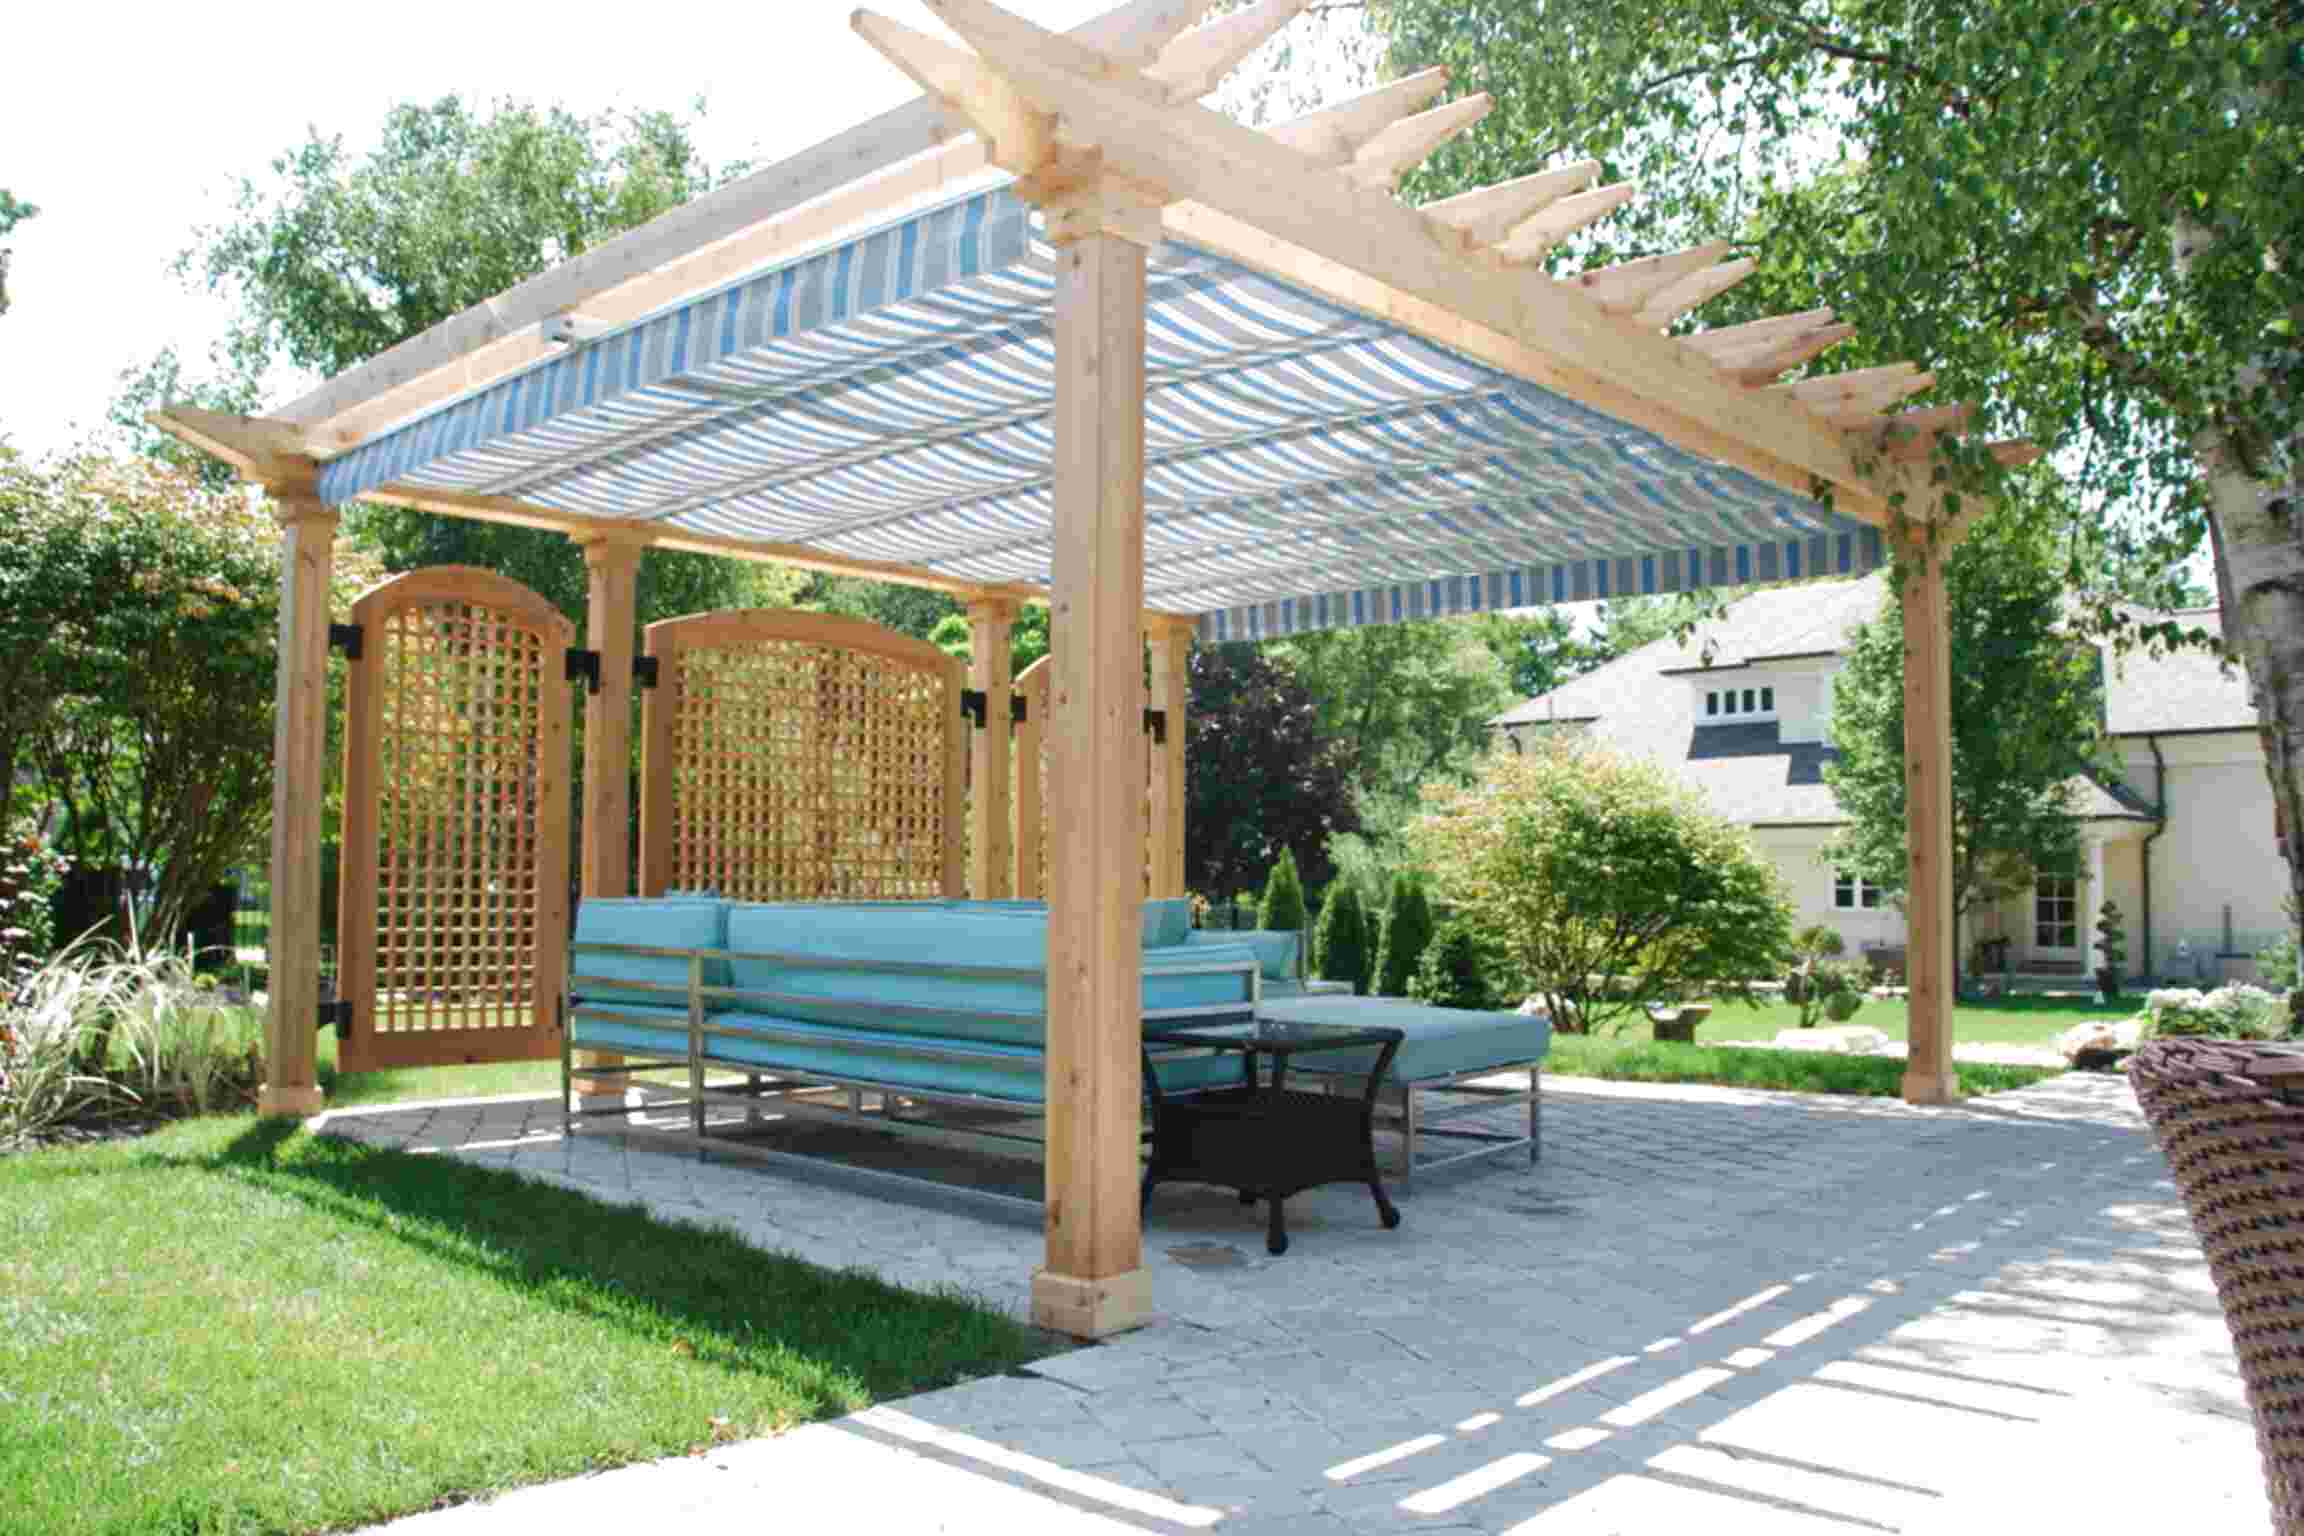 Retractable Canopy for sale in UK | View 60 bargains